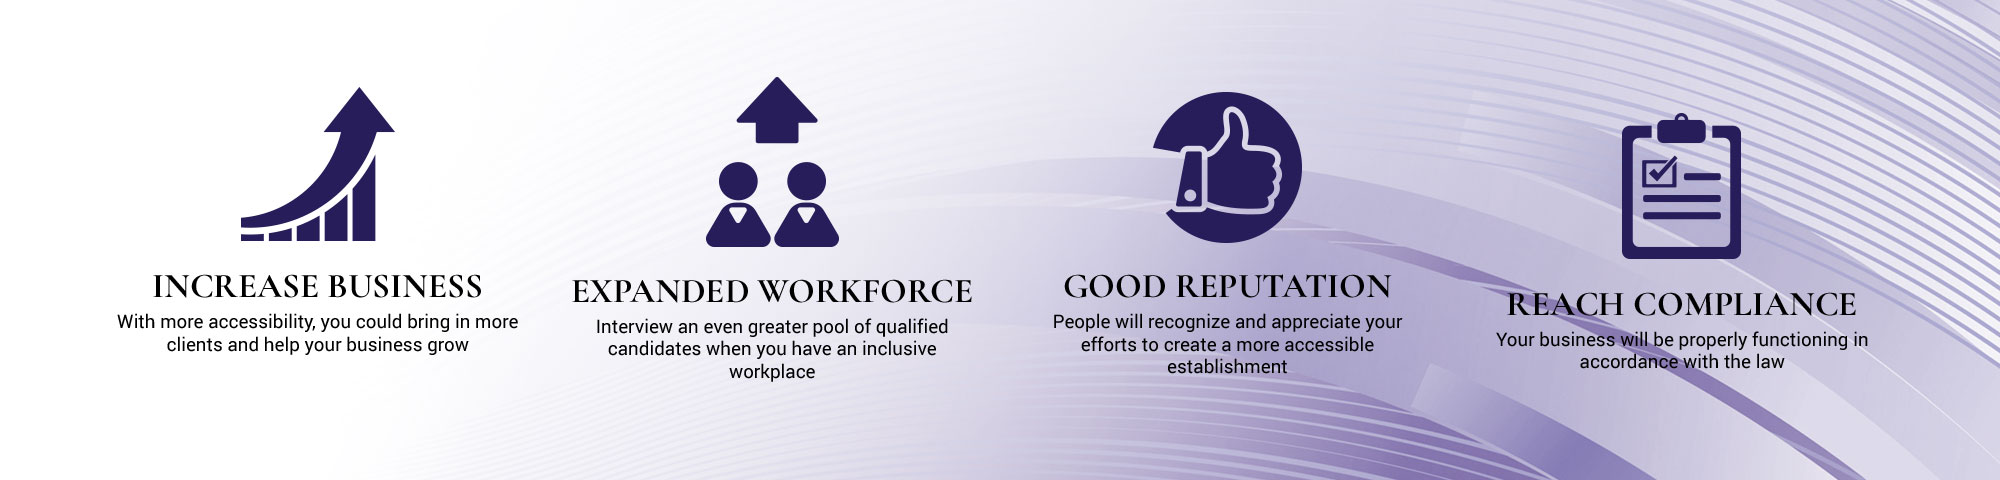 Benefits of ADA Compliance Infographic